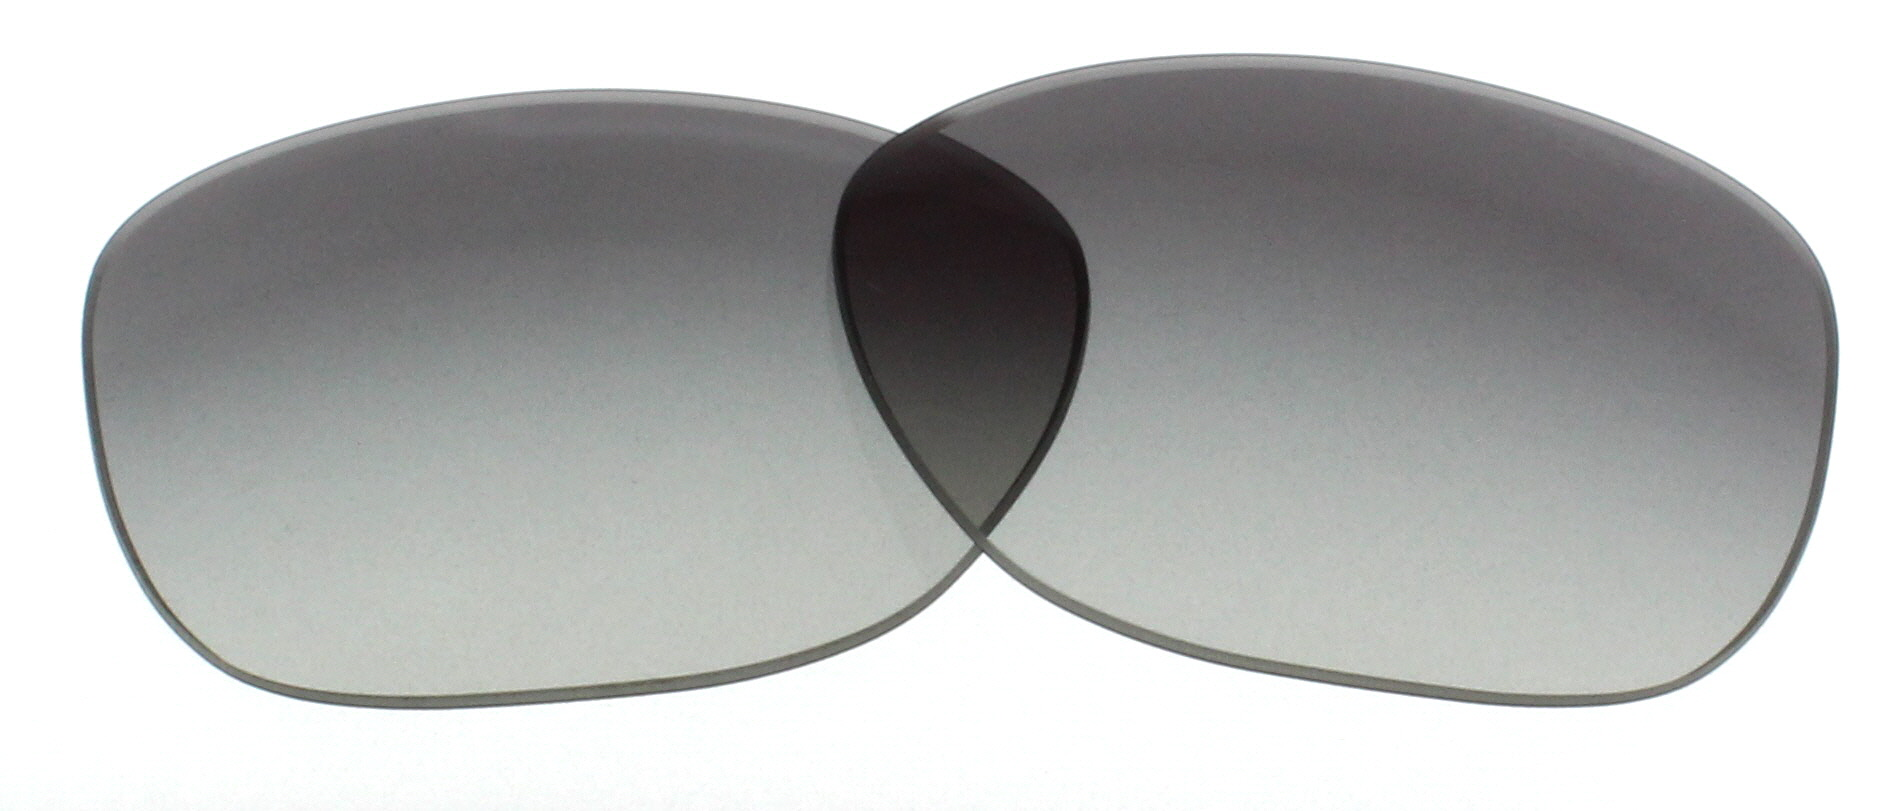 b2f1b98370f8 Image is loading PRADA-Replacement-Lenses-PR-01OS-Grey-Gradient-55mm